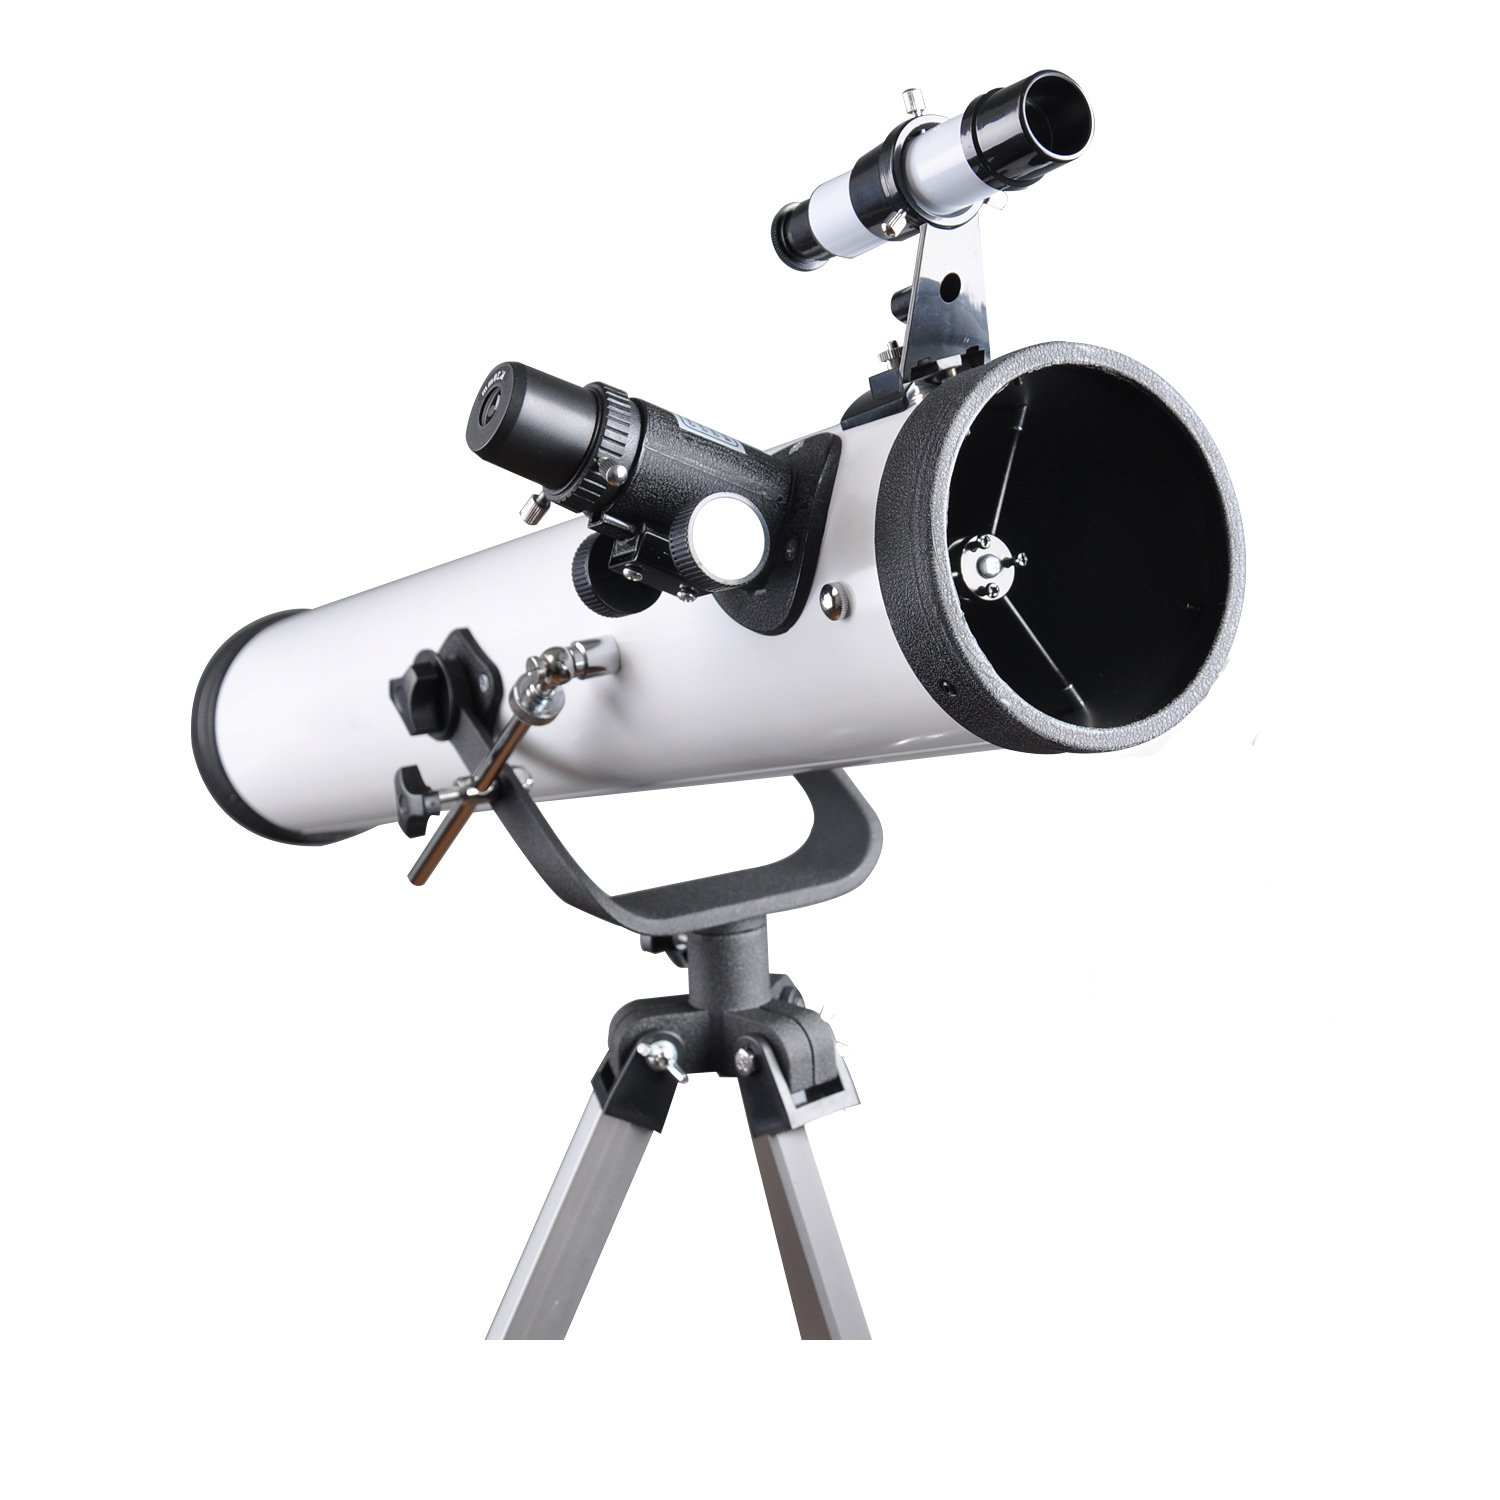 Refractor Telescope 70EQ Scope - 76mm Aperture and 700mm Focal Length, Travel Refractor, Multi-layer Green Film, with Smartphone Adapter for Photography by Quicktec (76700)